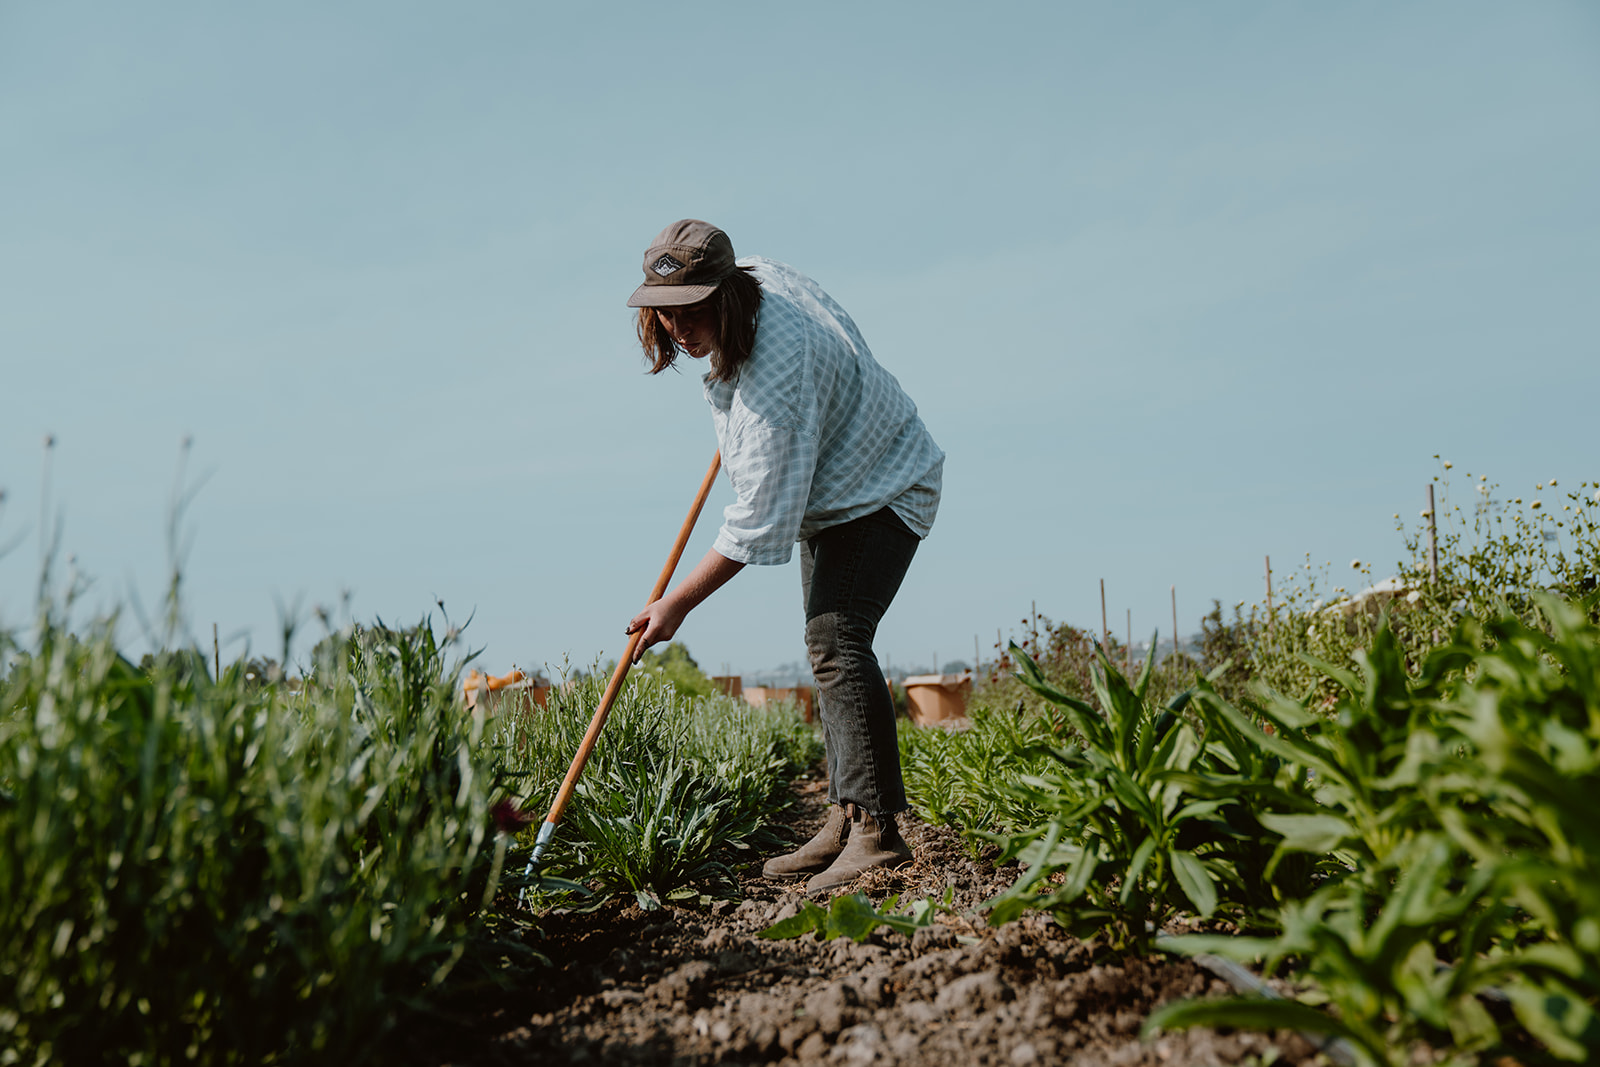 Tending to the soil in the field